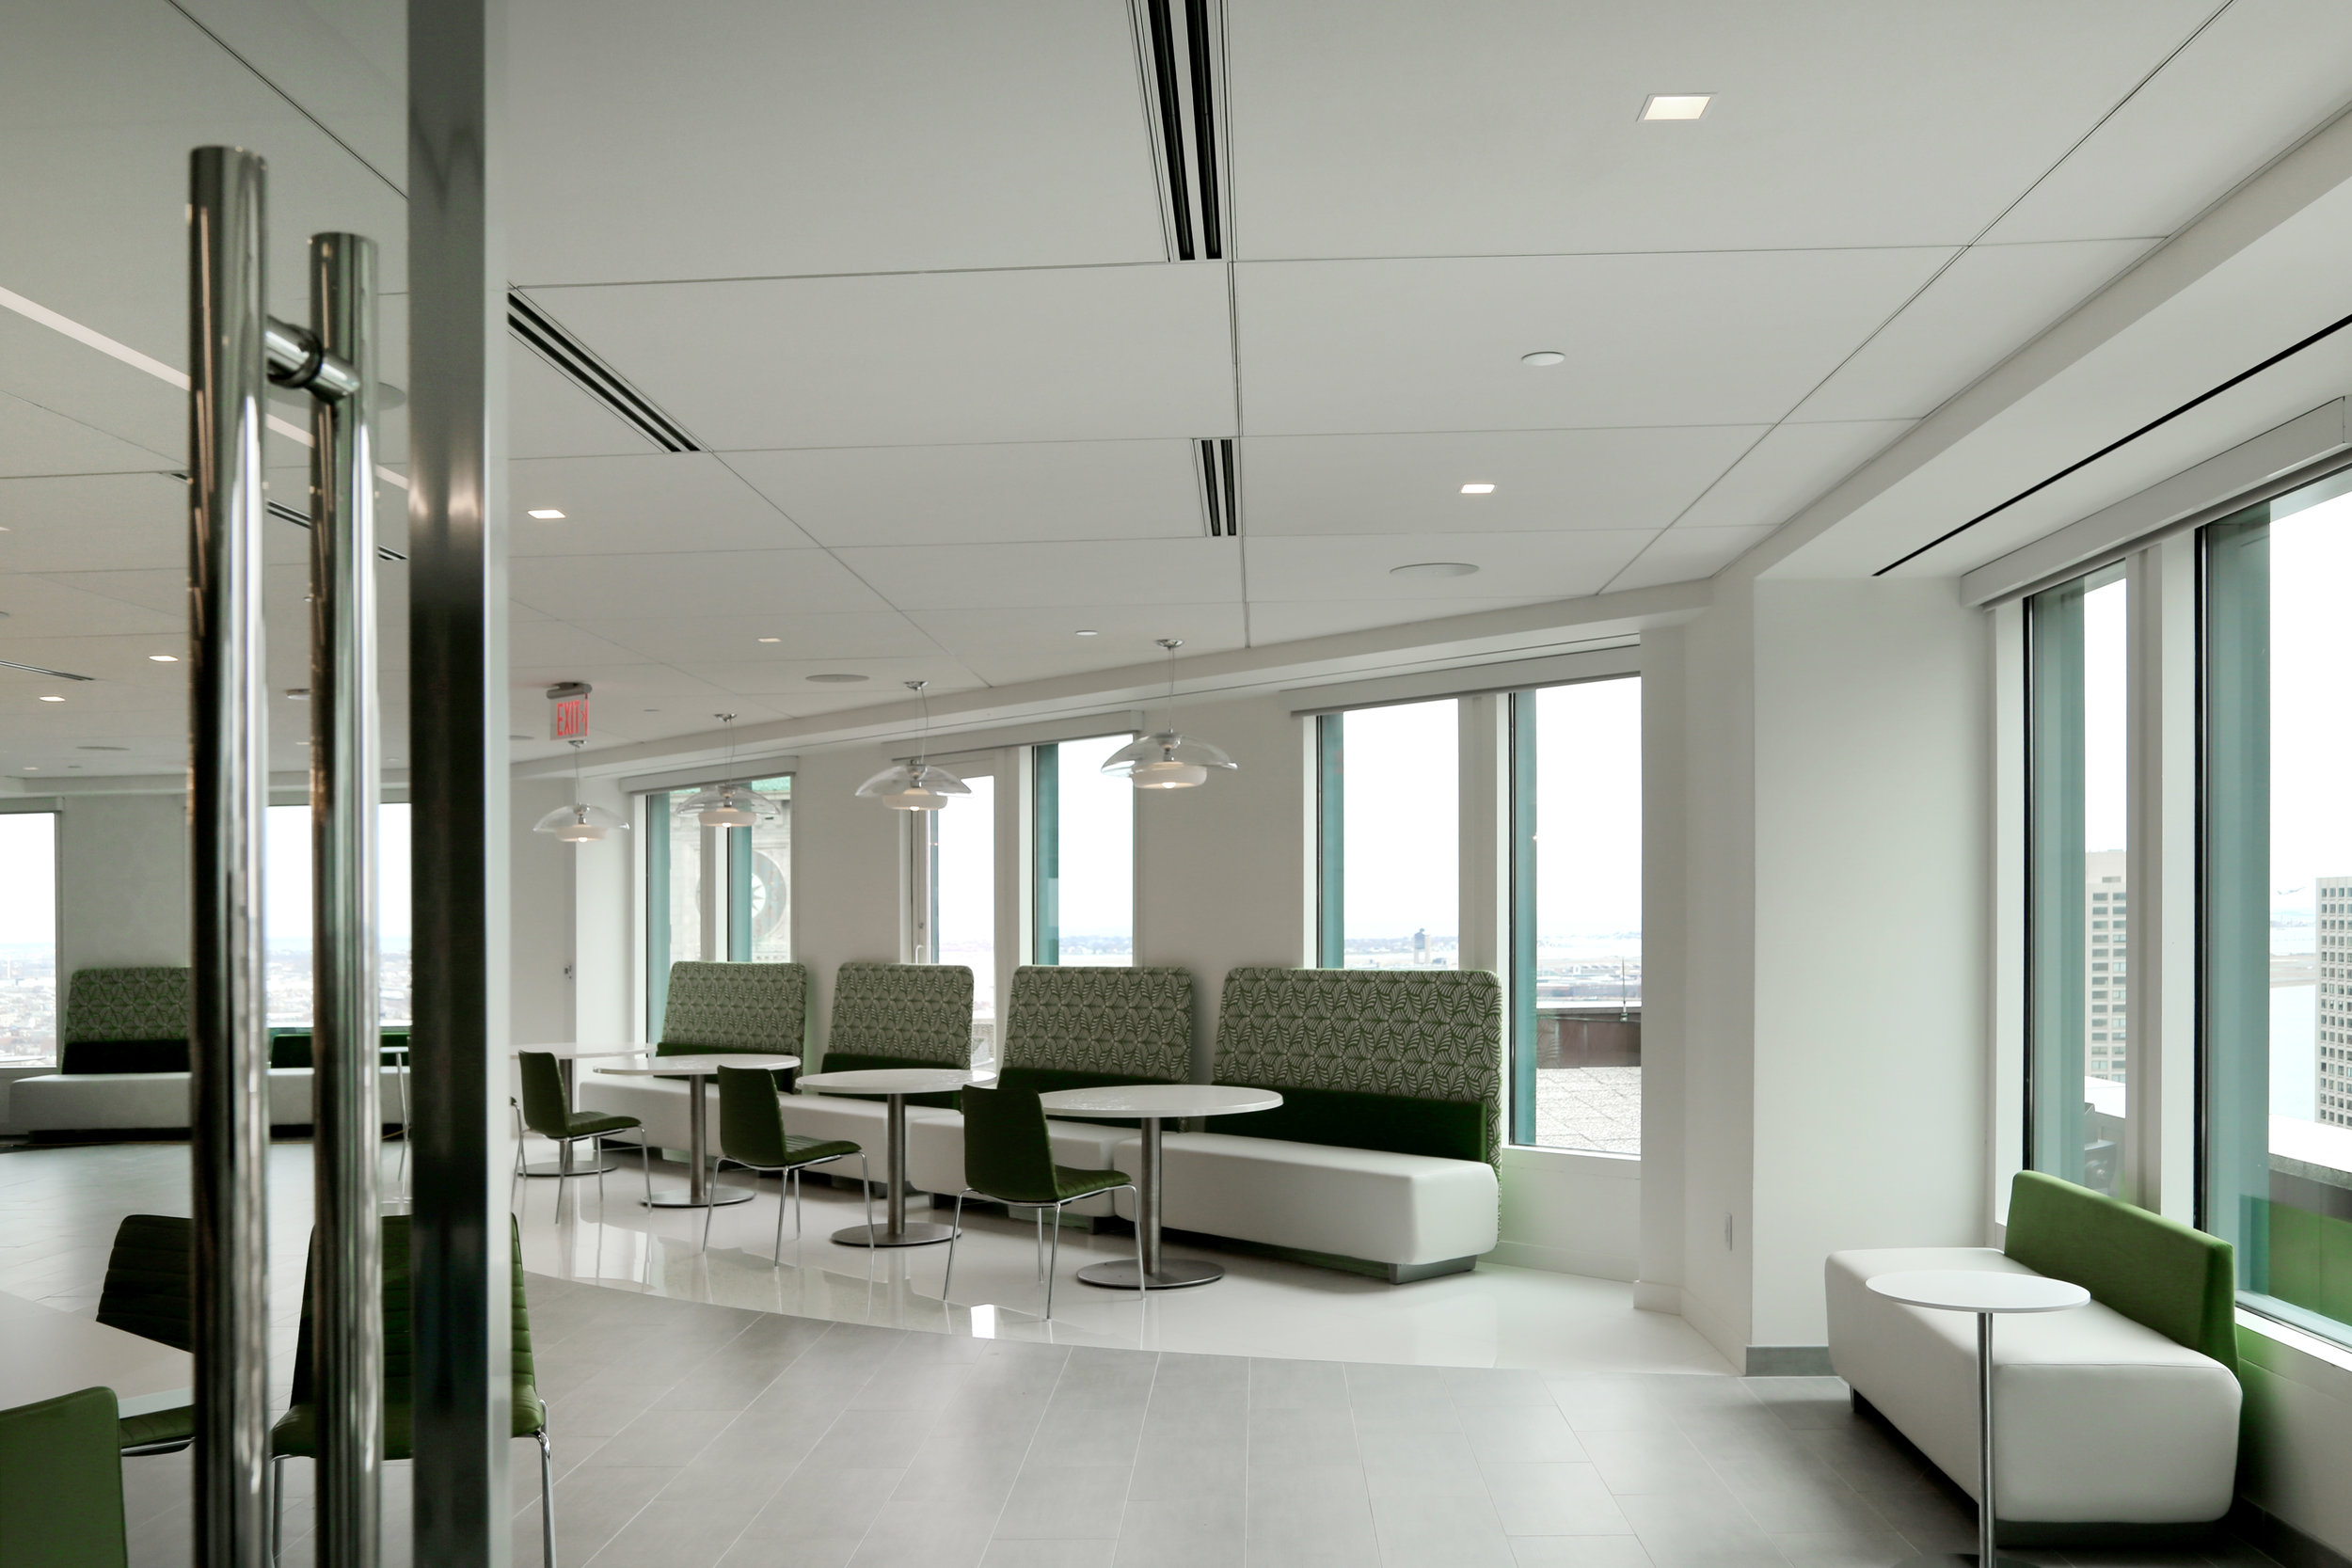 Telescoping Conference Wall Custom Anodized Sliding Wall Door System - Spaceworks AI.jpg